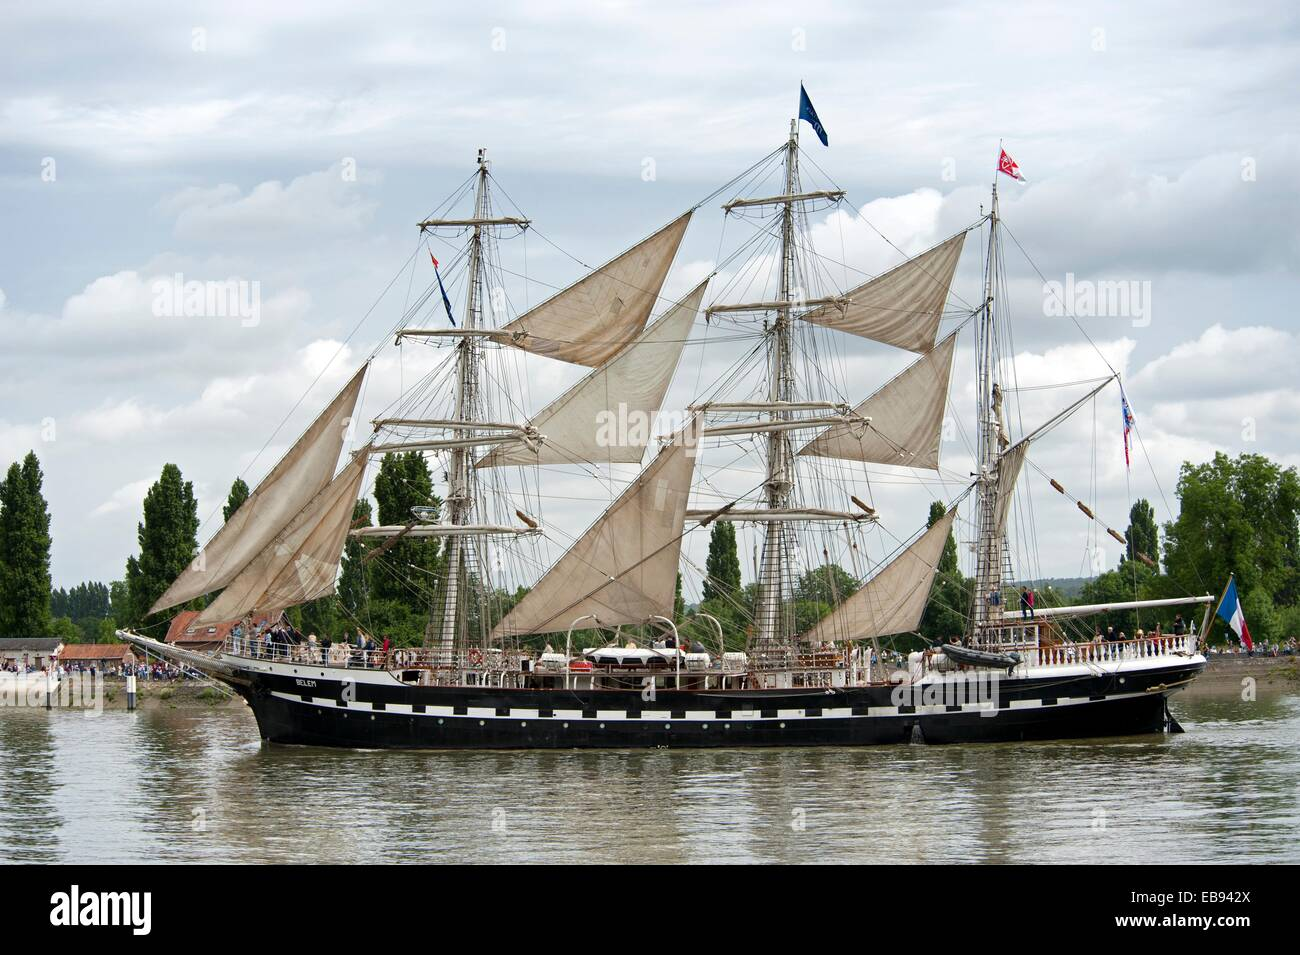 Armada 2013 - cruise of biggest sailing vessels in the world on Seine river from Rouen to Atlantic Ocean 'Belem' - Stock Image